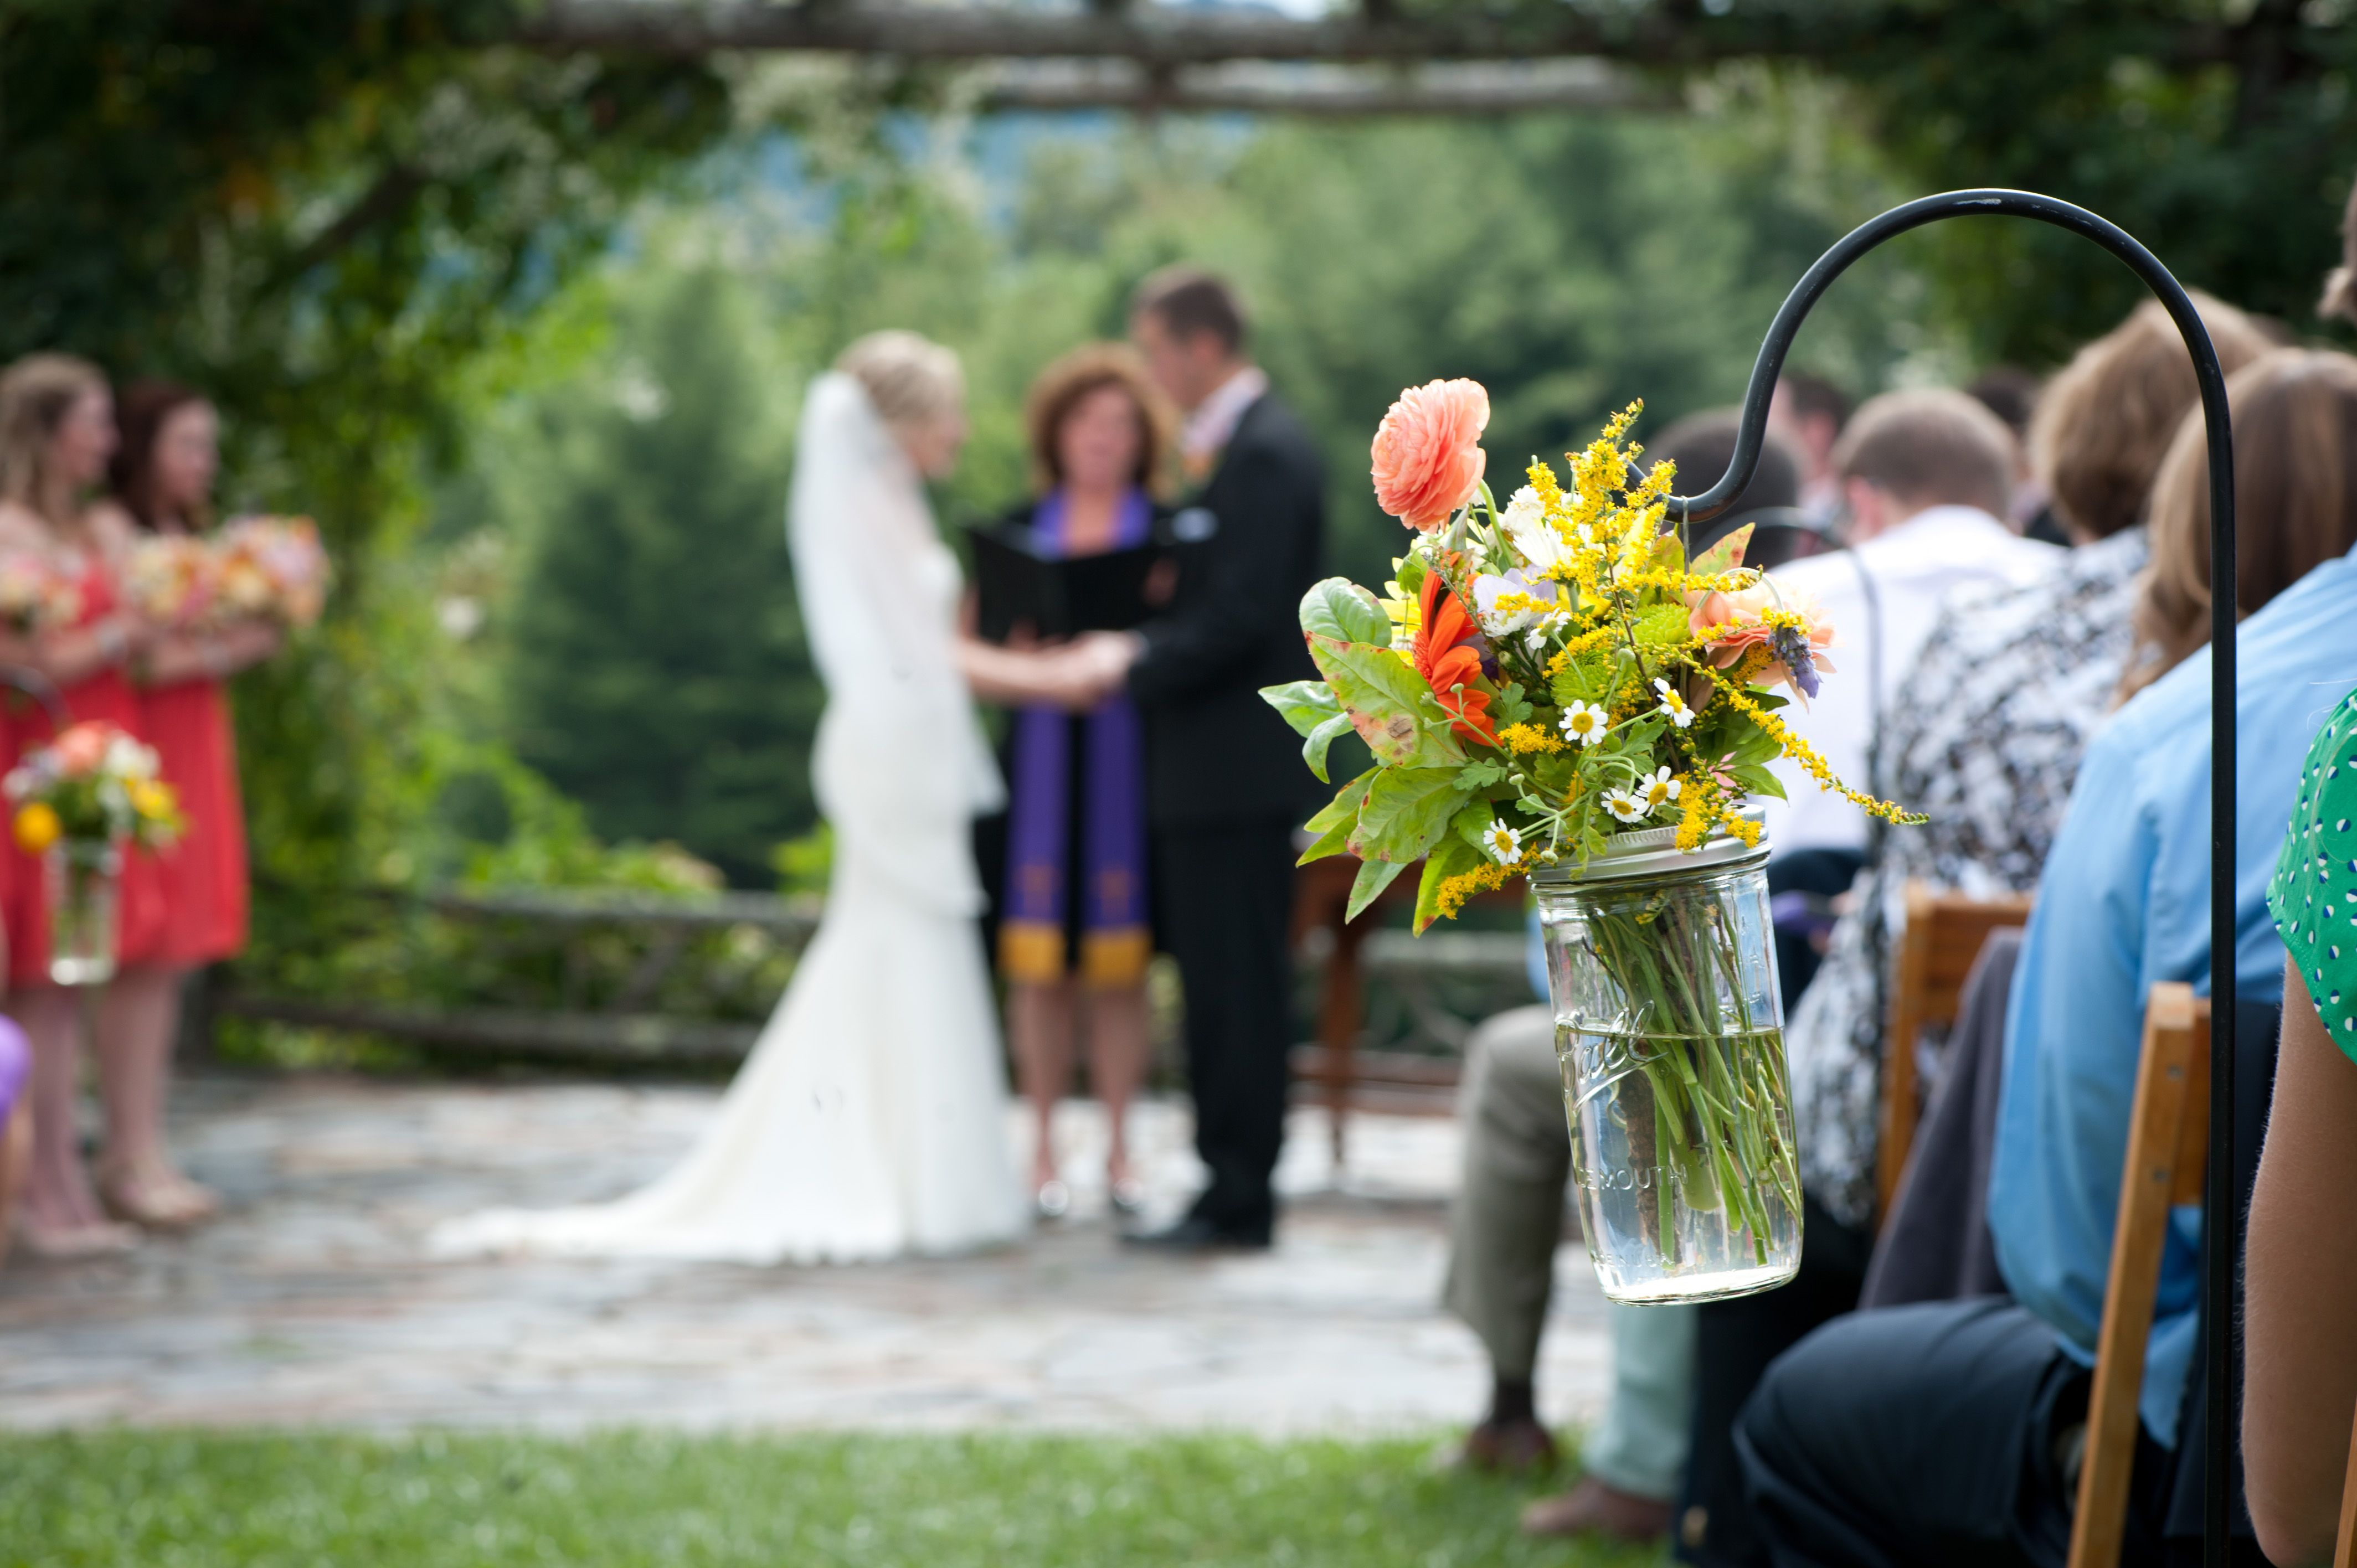 Our beautiful pergola does not require much for decorations, but I love the use of small bouquets down the aisle to add a little color!  #wedding #flowers #westernNC #weddingvenue #rustic www.sawyerfamilyfarmstead.com